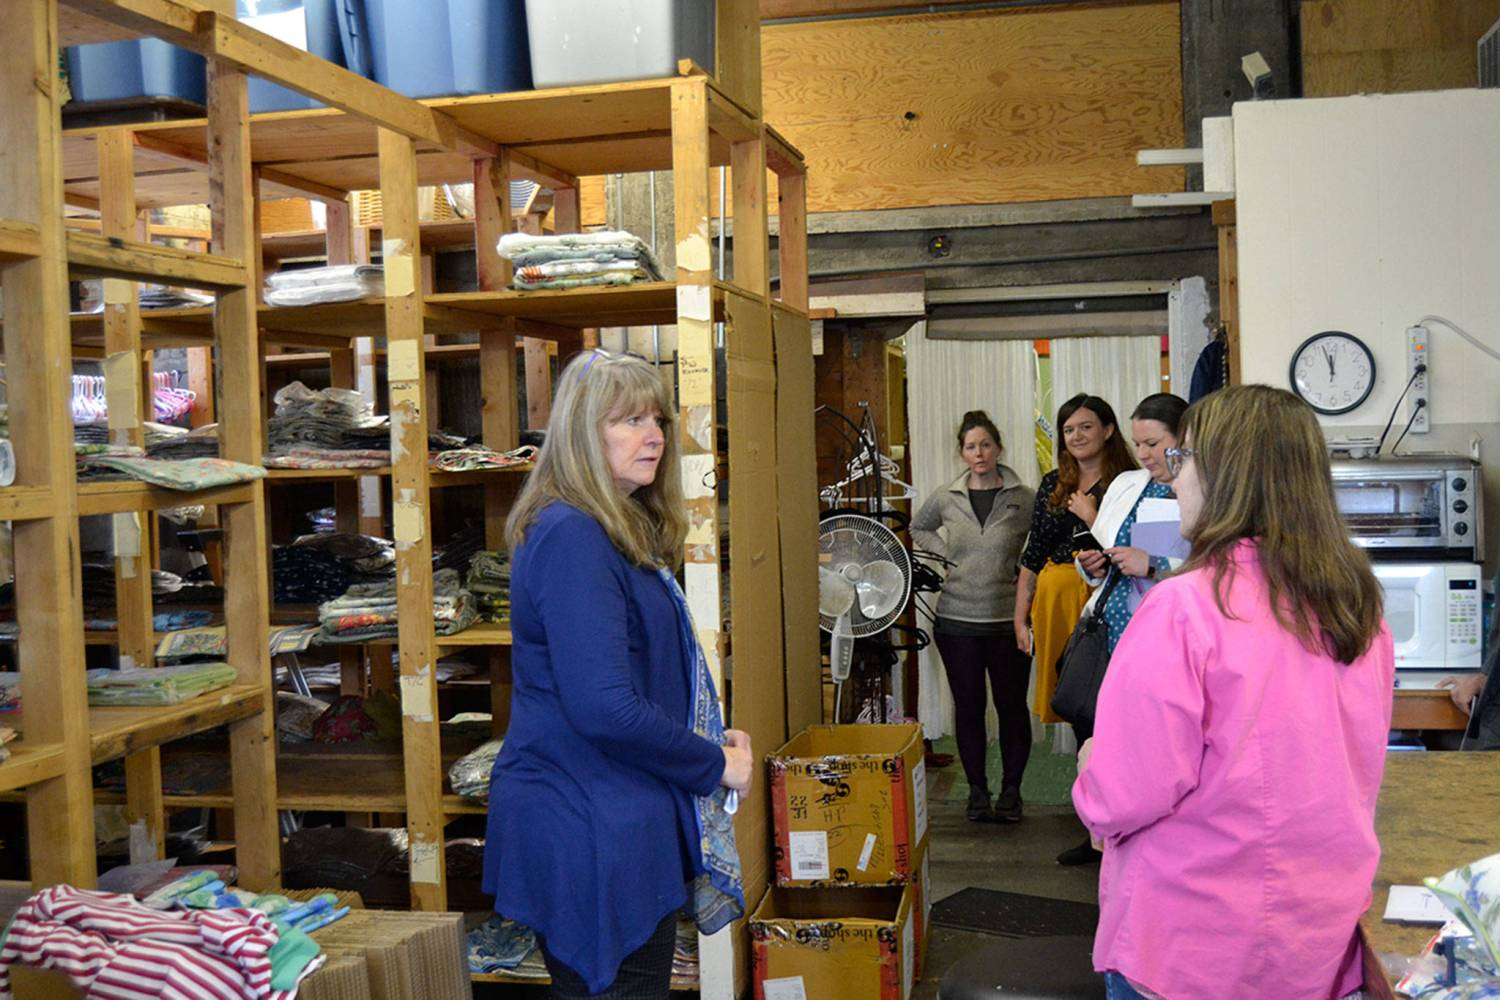 During a walking tour of some of Sequim's many small businesses, Kathy Greenwald, operations manager for Pondicherri/handprint, offers a behind-the-scenes look at the wholesale side of the business to U.S. Small Business Administration Seattle District Director Kerrie Hurd and others on March 28. Sequim Gazette photo by Matthew Nash